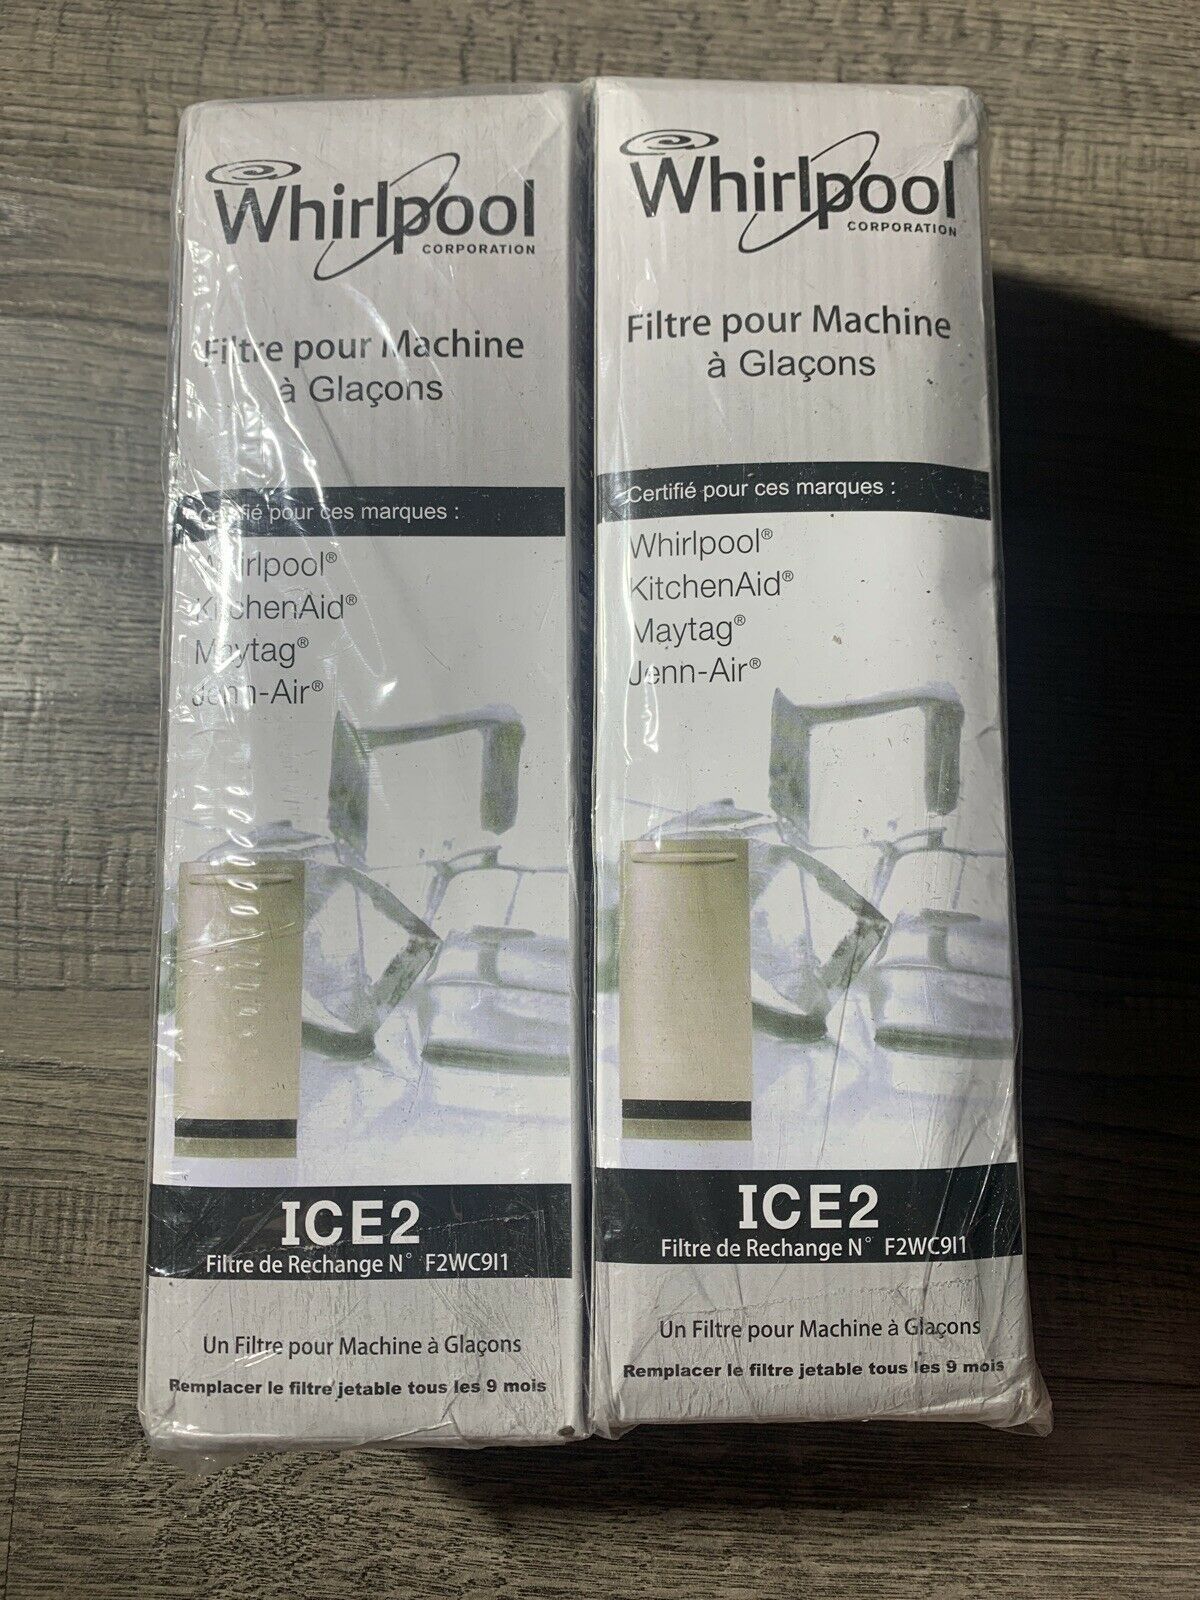 W10480323 ice2 f2wc9i1 Water Filter 2pack Glacial Pure ICE2 F2WC9I1 Ice Maker Water Filter Compatible with ice2 f2wc9i1 W10565350